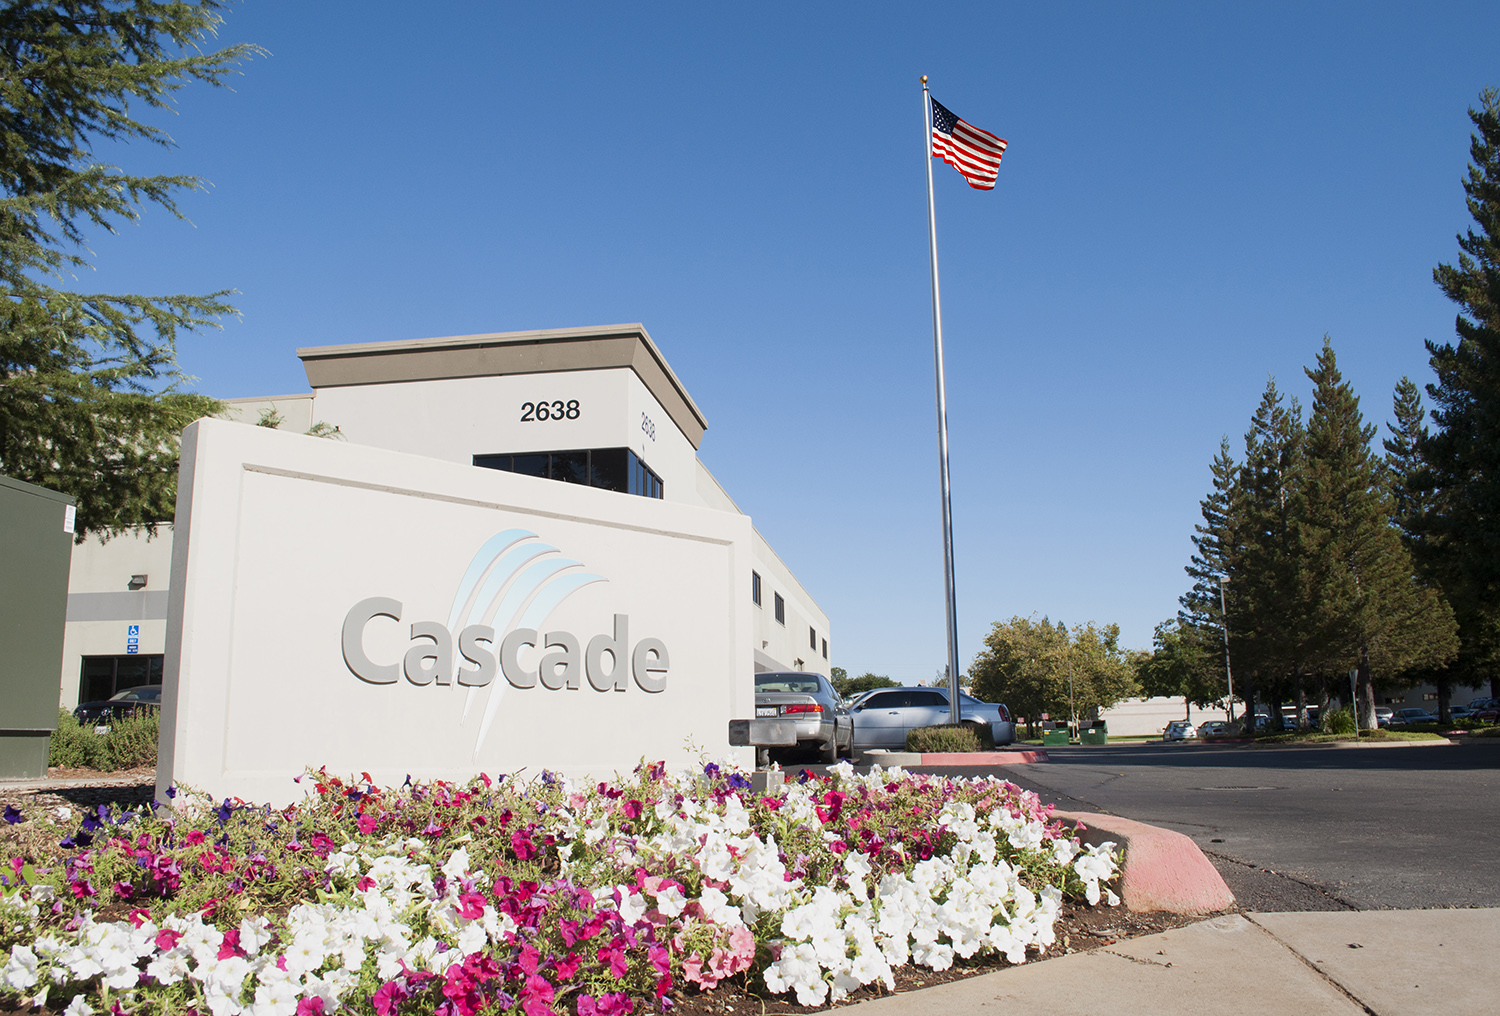 Cascade designs and manufactures orthopedic devices